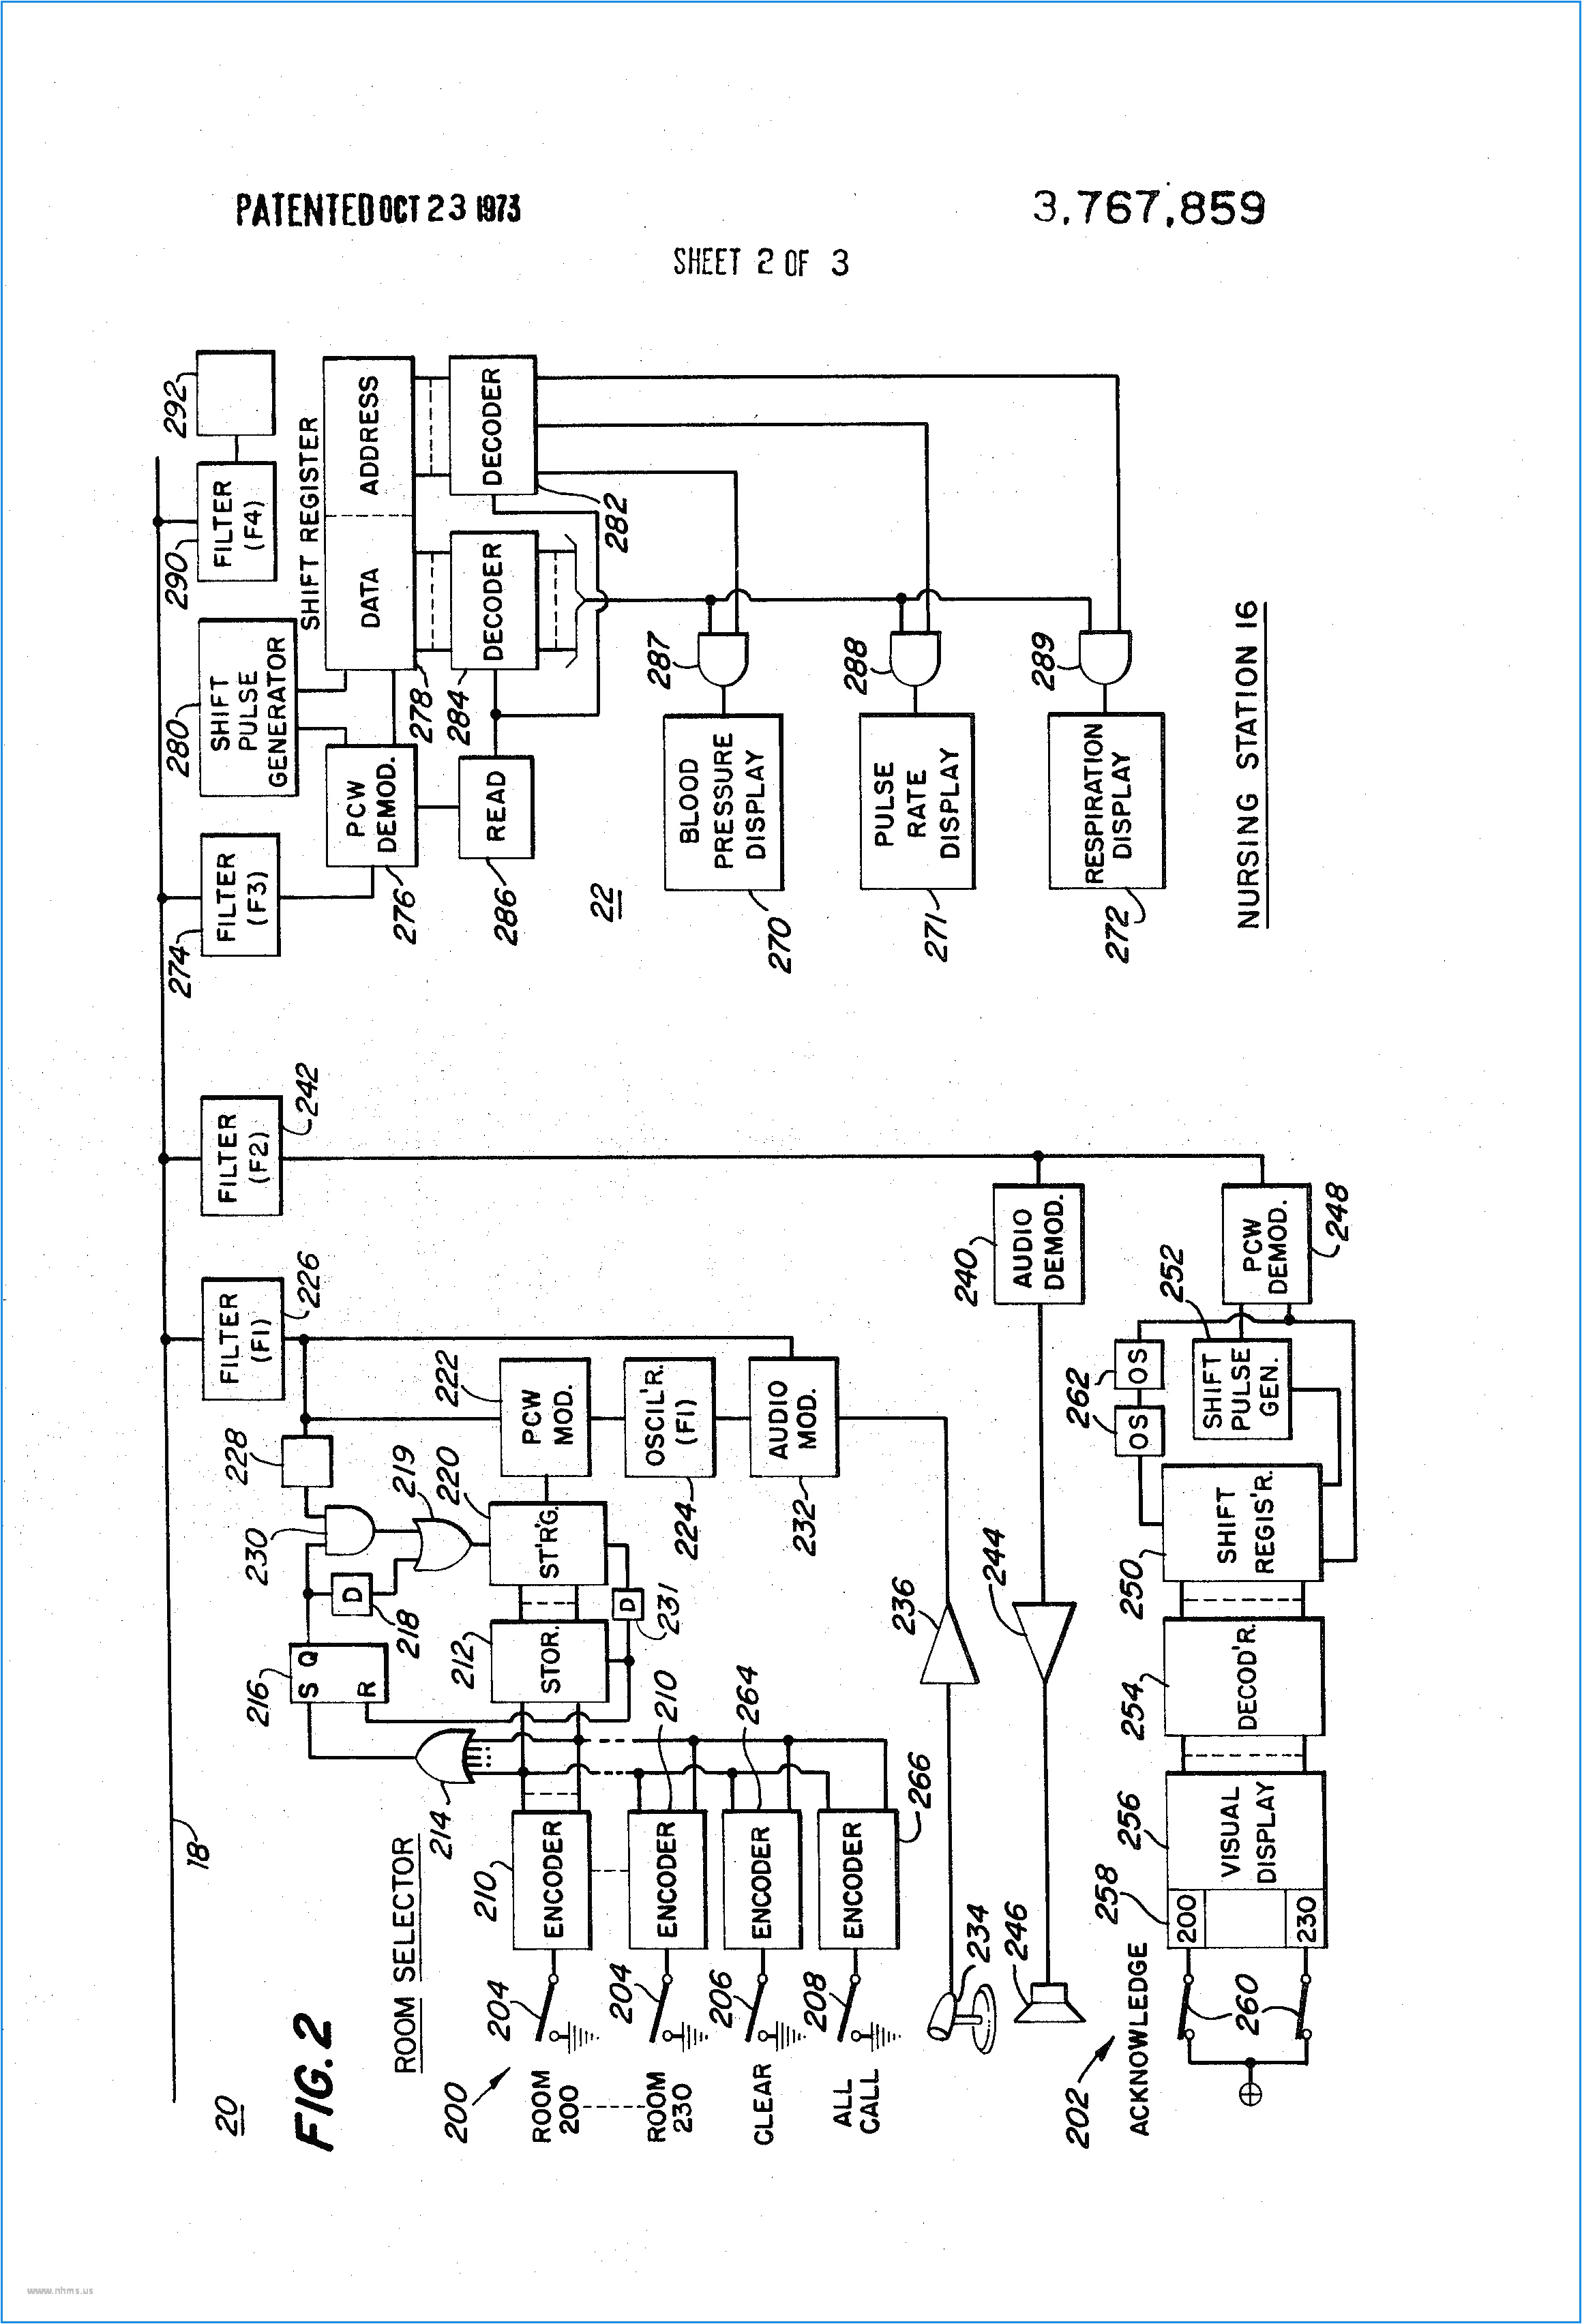 nurse call system wiring diagram unequalled executone nurse call nurse call system wiring diagram unequalled executone